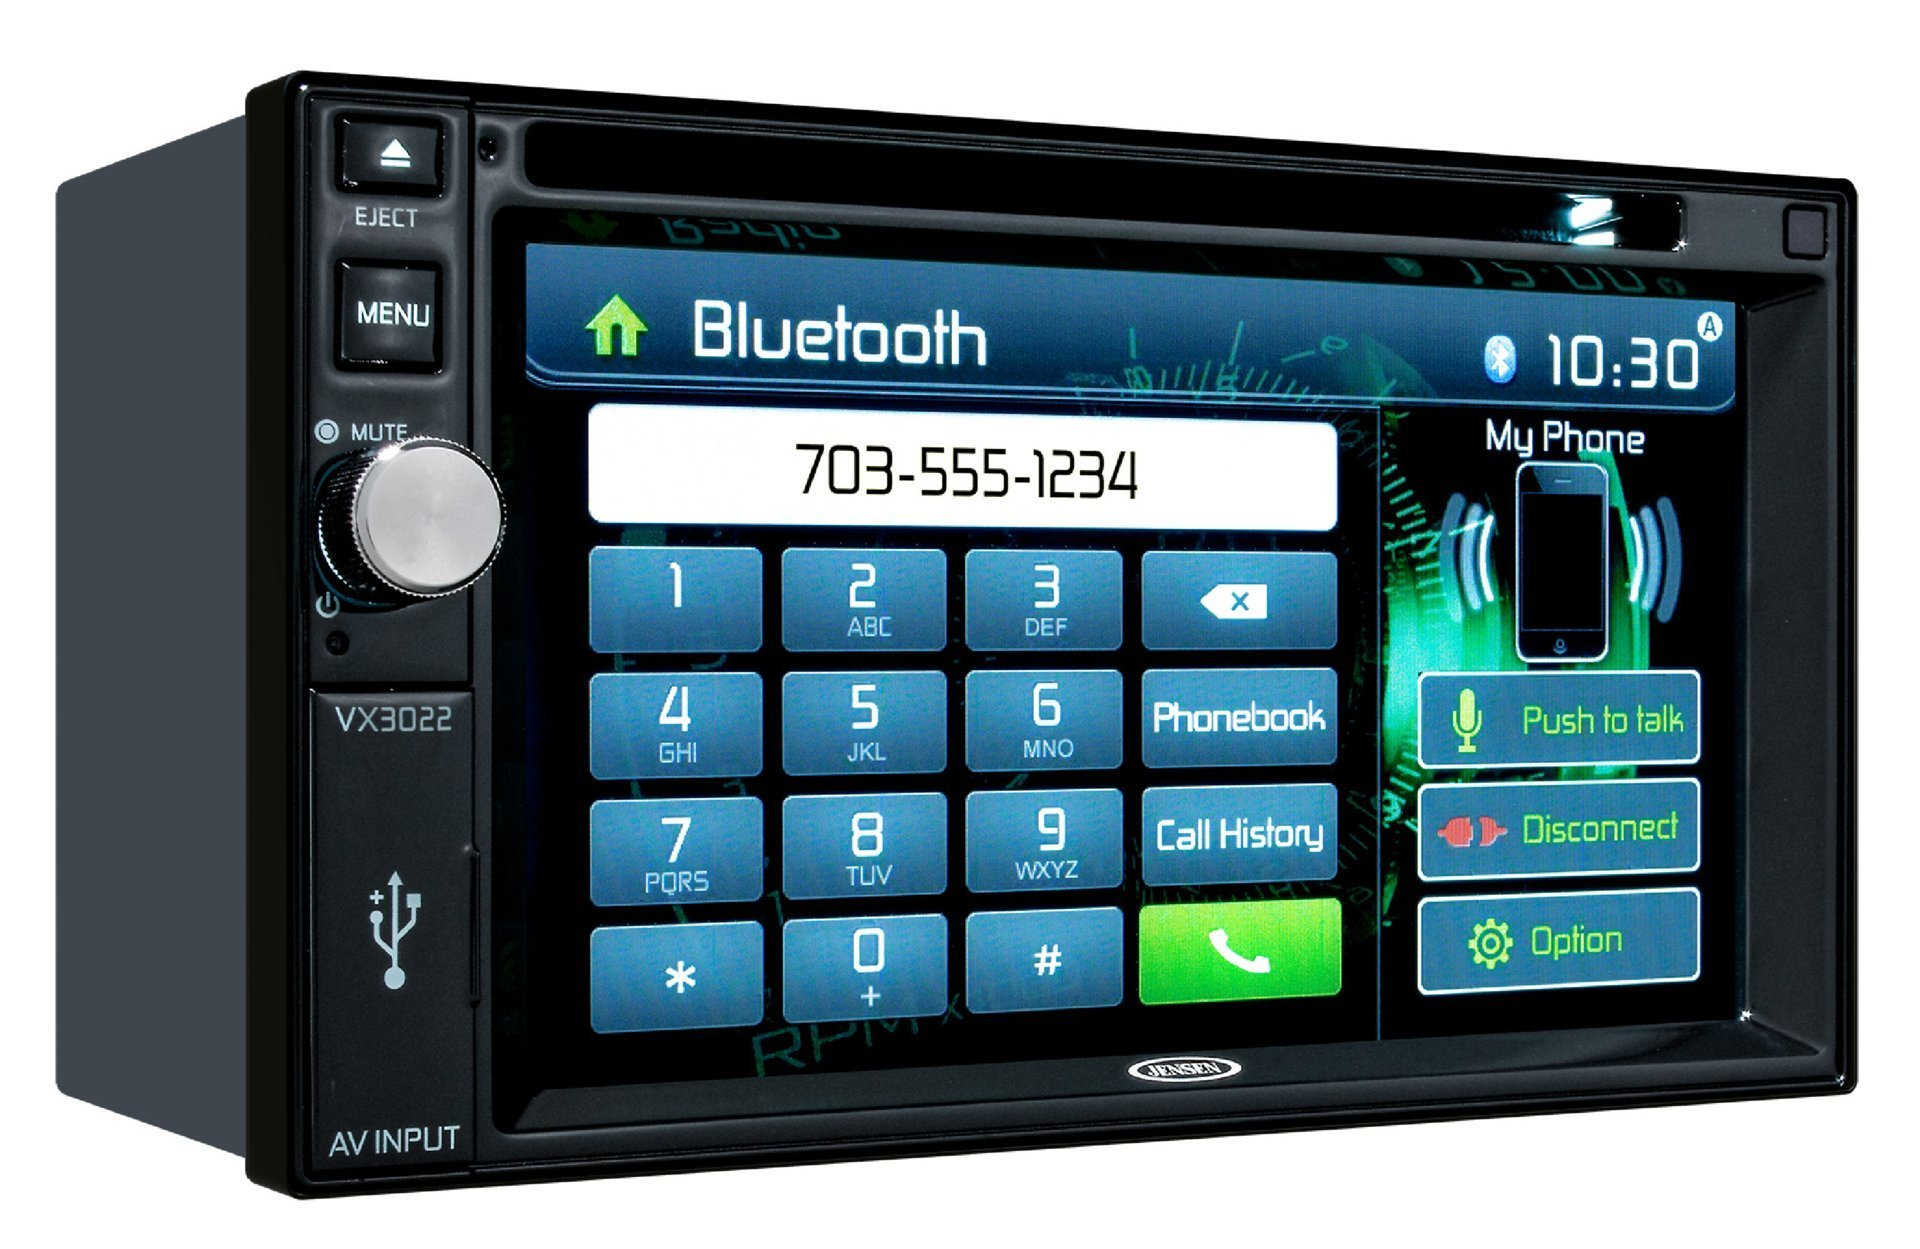 Jensen VX3022 6.2 inch LCD Multimedia Touch Screen Double Din Car Stereo with Built-In Bluetooth, CD/DVD Player & USB Port (Certified Refurbished)